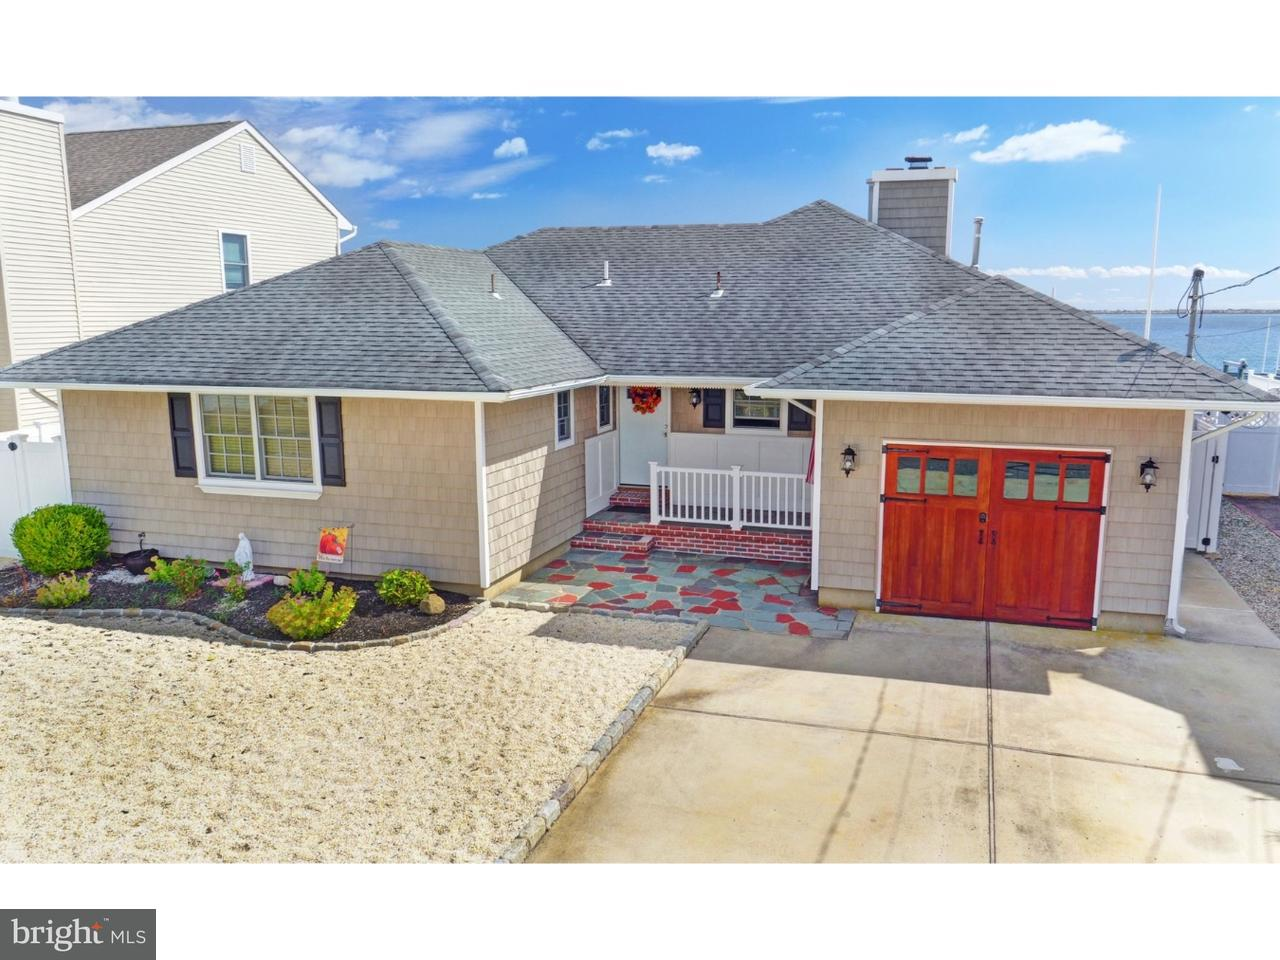 Single Family Home for Sale at 639 BAYVIEW Drive Toms River, New Jersey 08753 United States